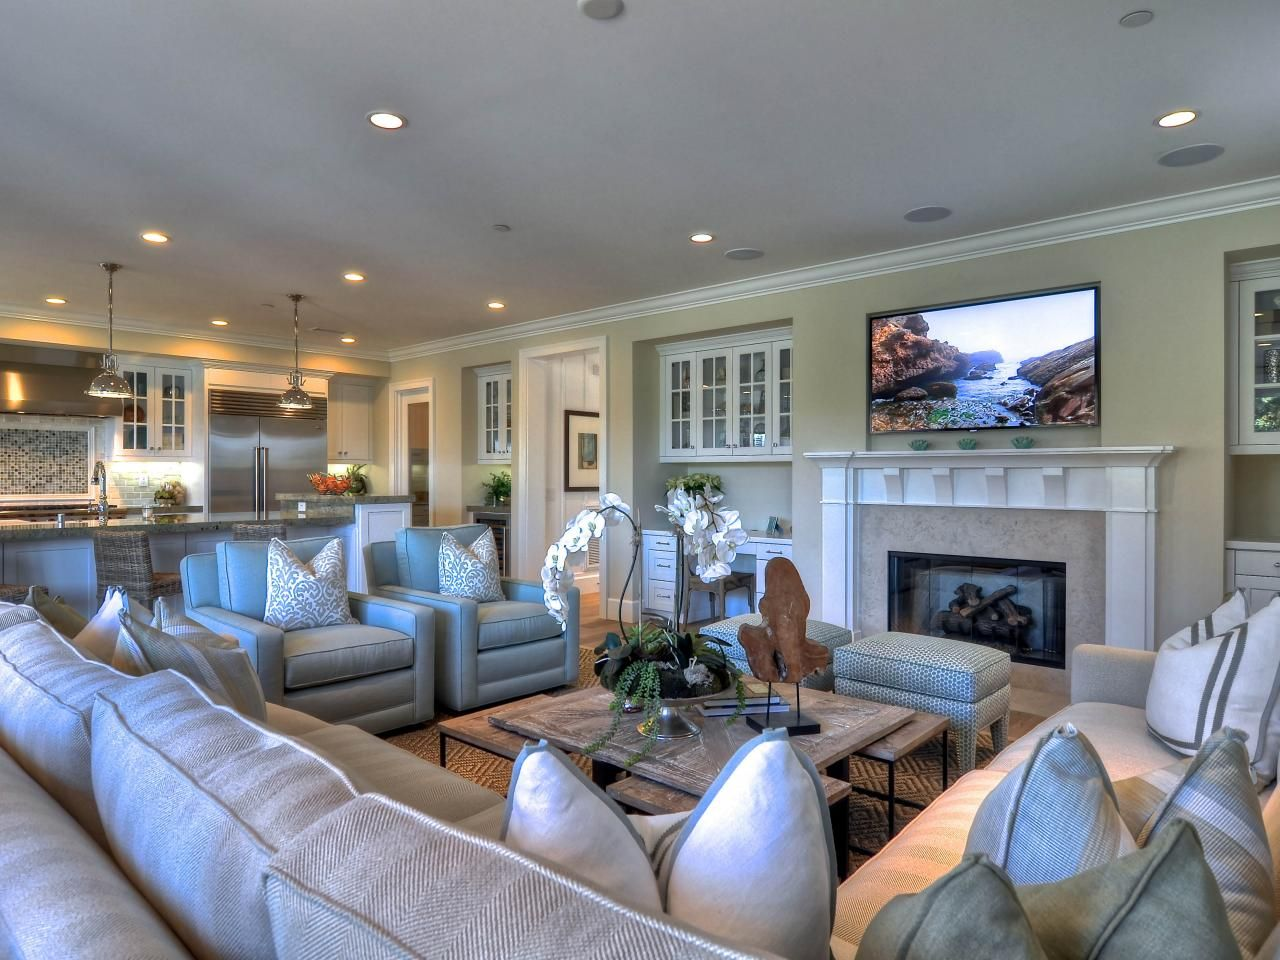 Coastal decor is found in the details in this spacious for Large living room ideas